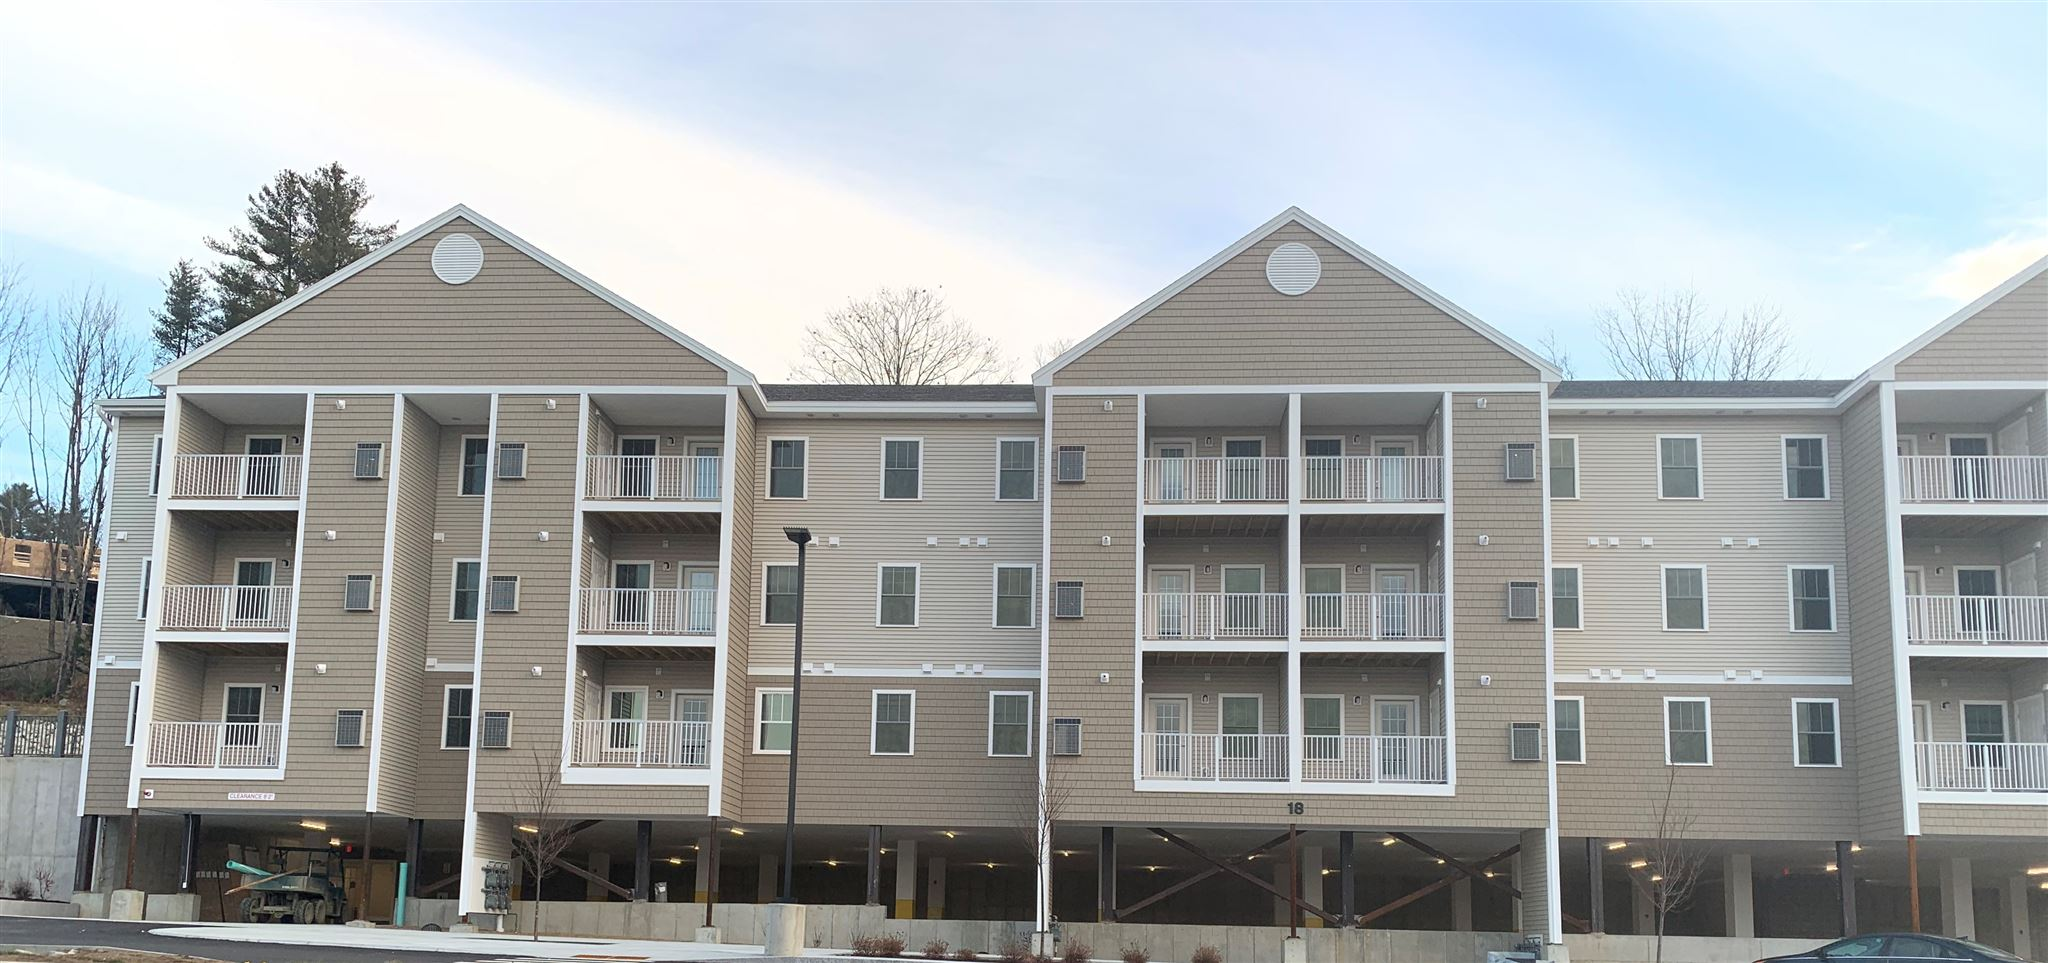 Lebanon NHAll Apartments and Housing  for sale